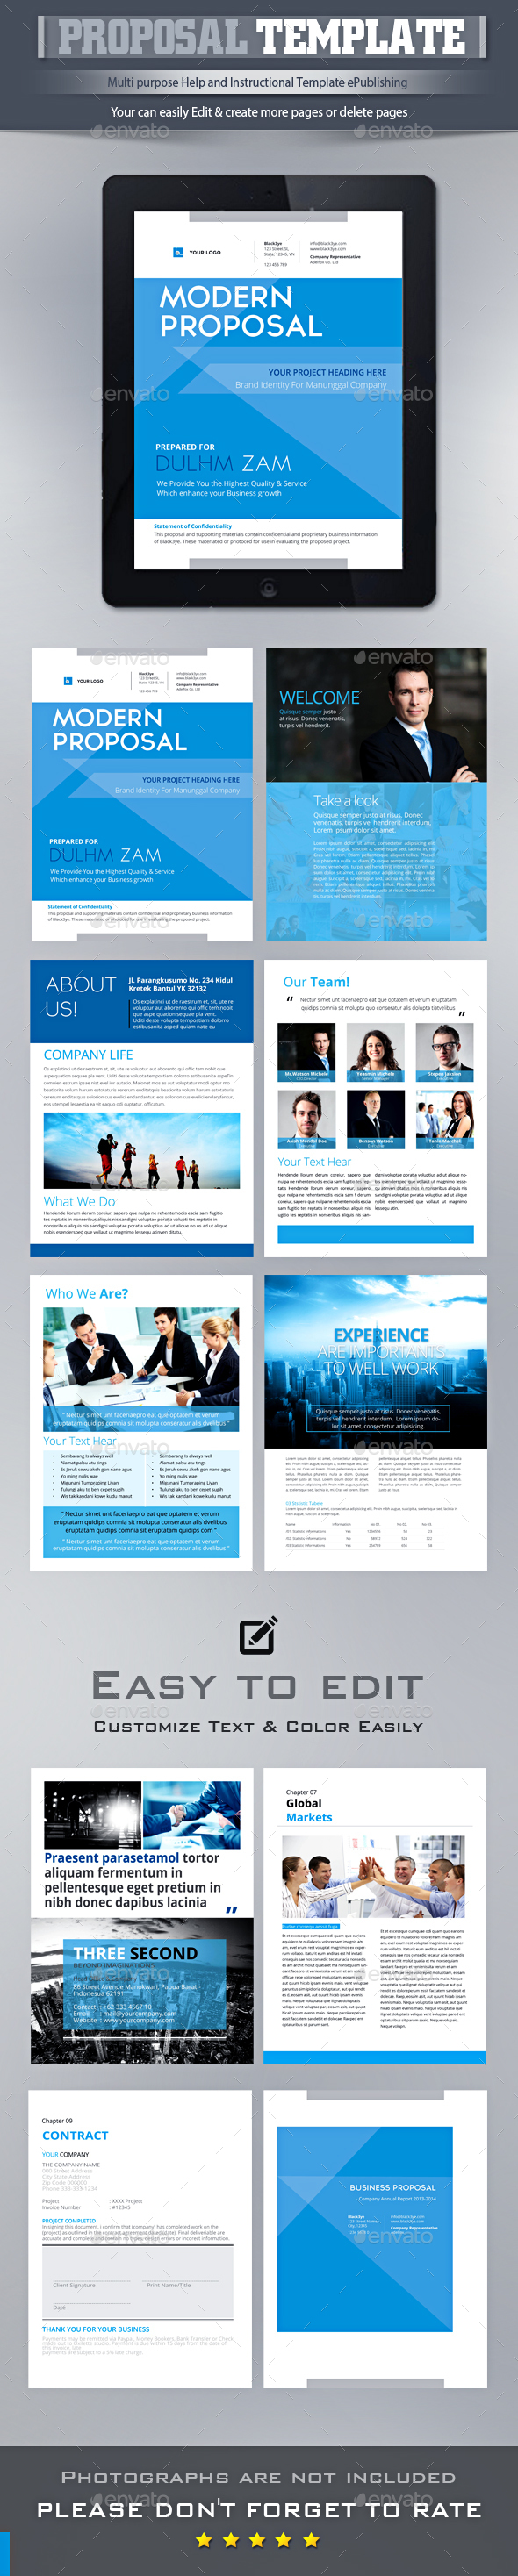 corporate e book template indesign indd design download http